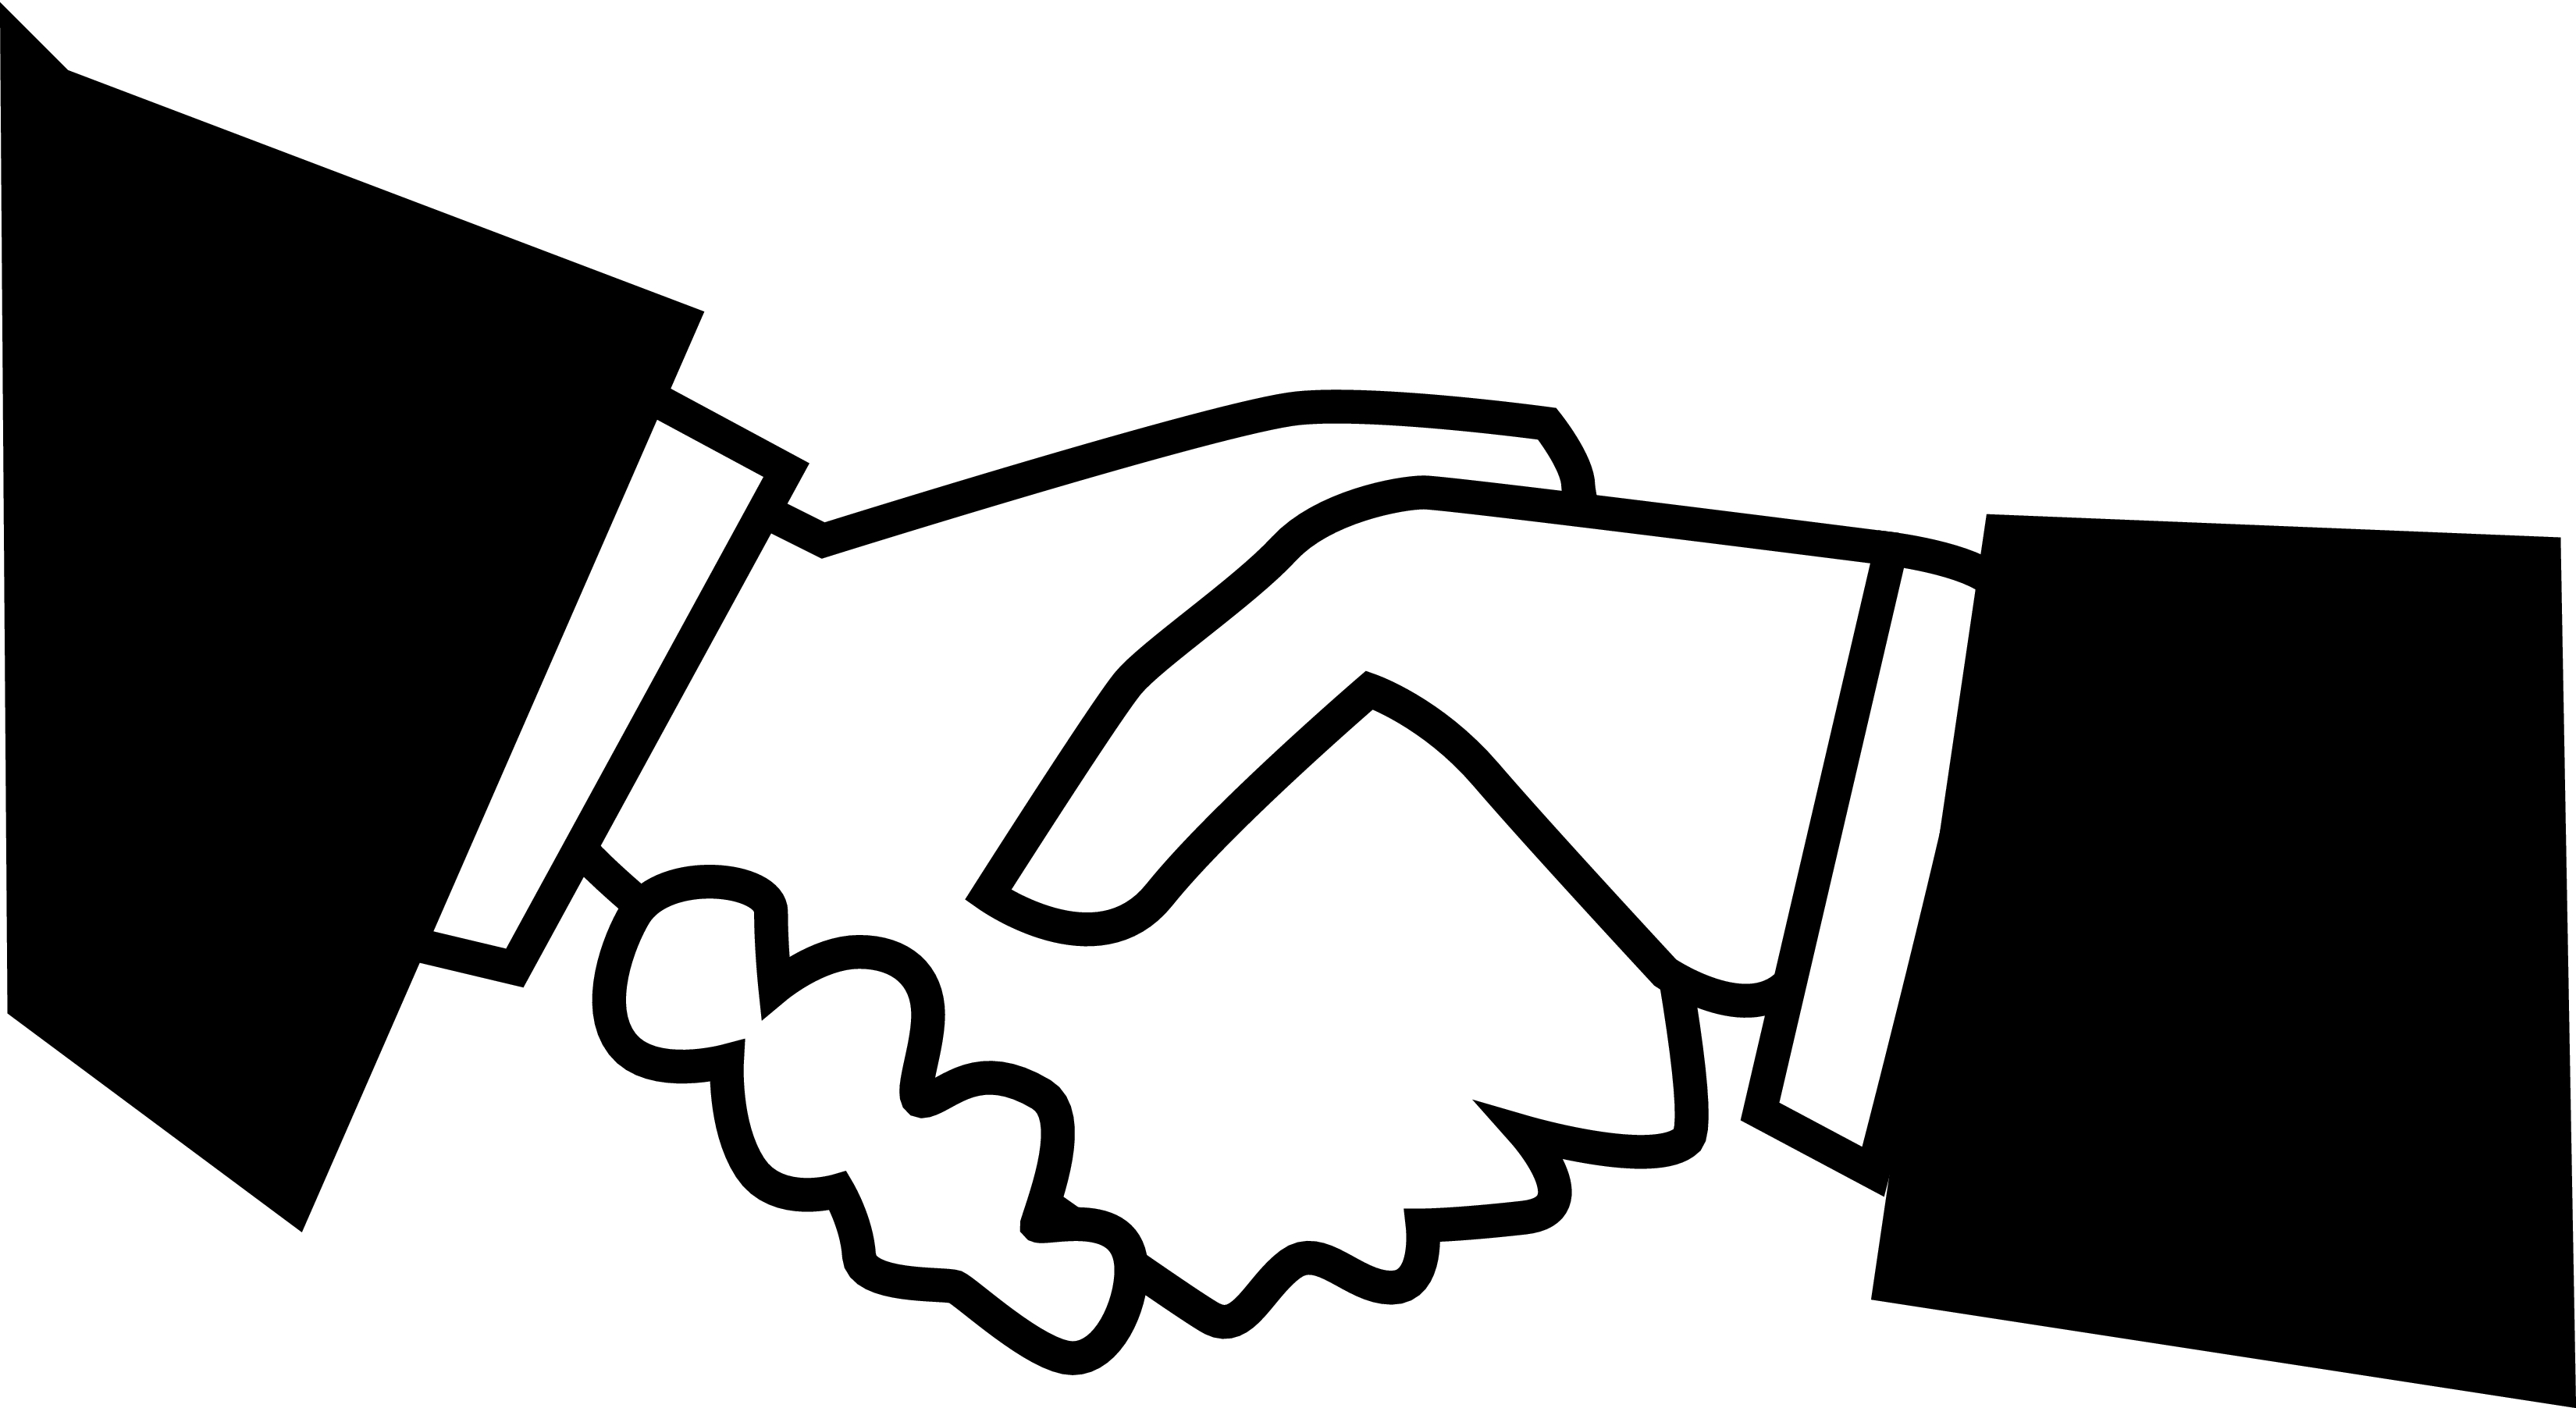 Black white handshake clipart kid 4.